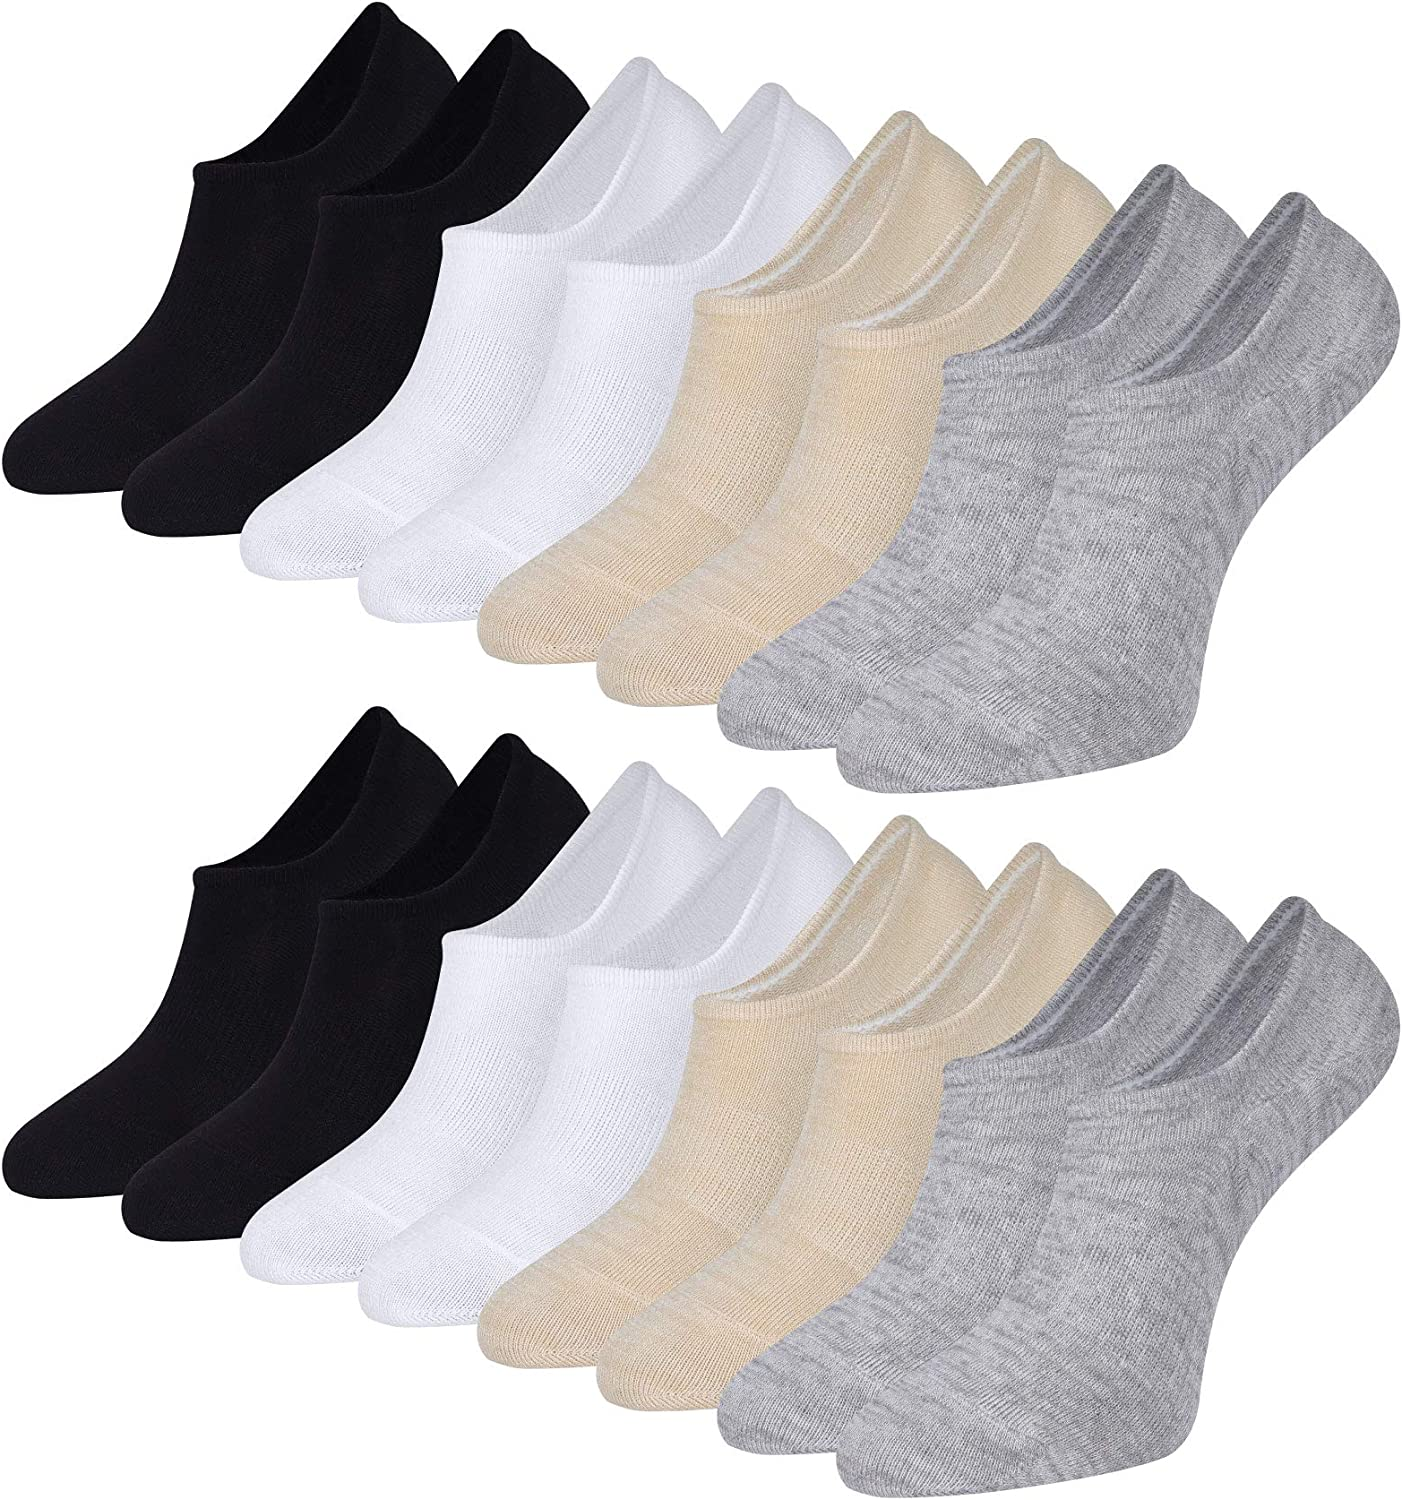 Bamboo No Show Socks for Women and Men Non Slip Low Cut Socks Ankle Footies Loafers Casual Boat Shoes Liners 8 Pairs